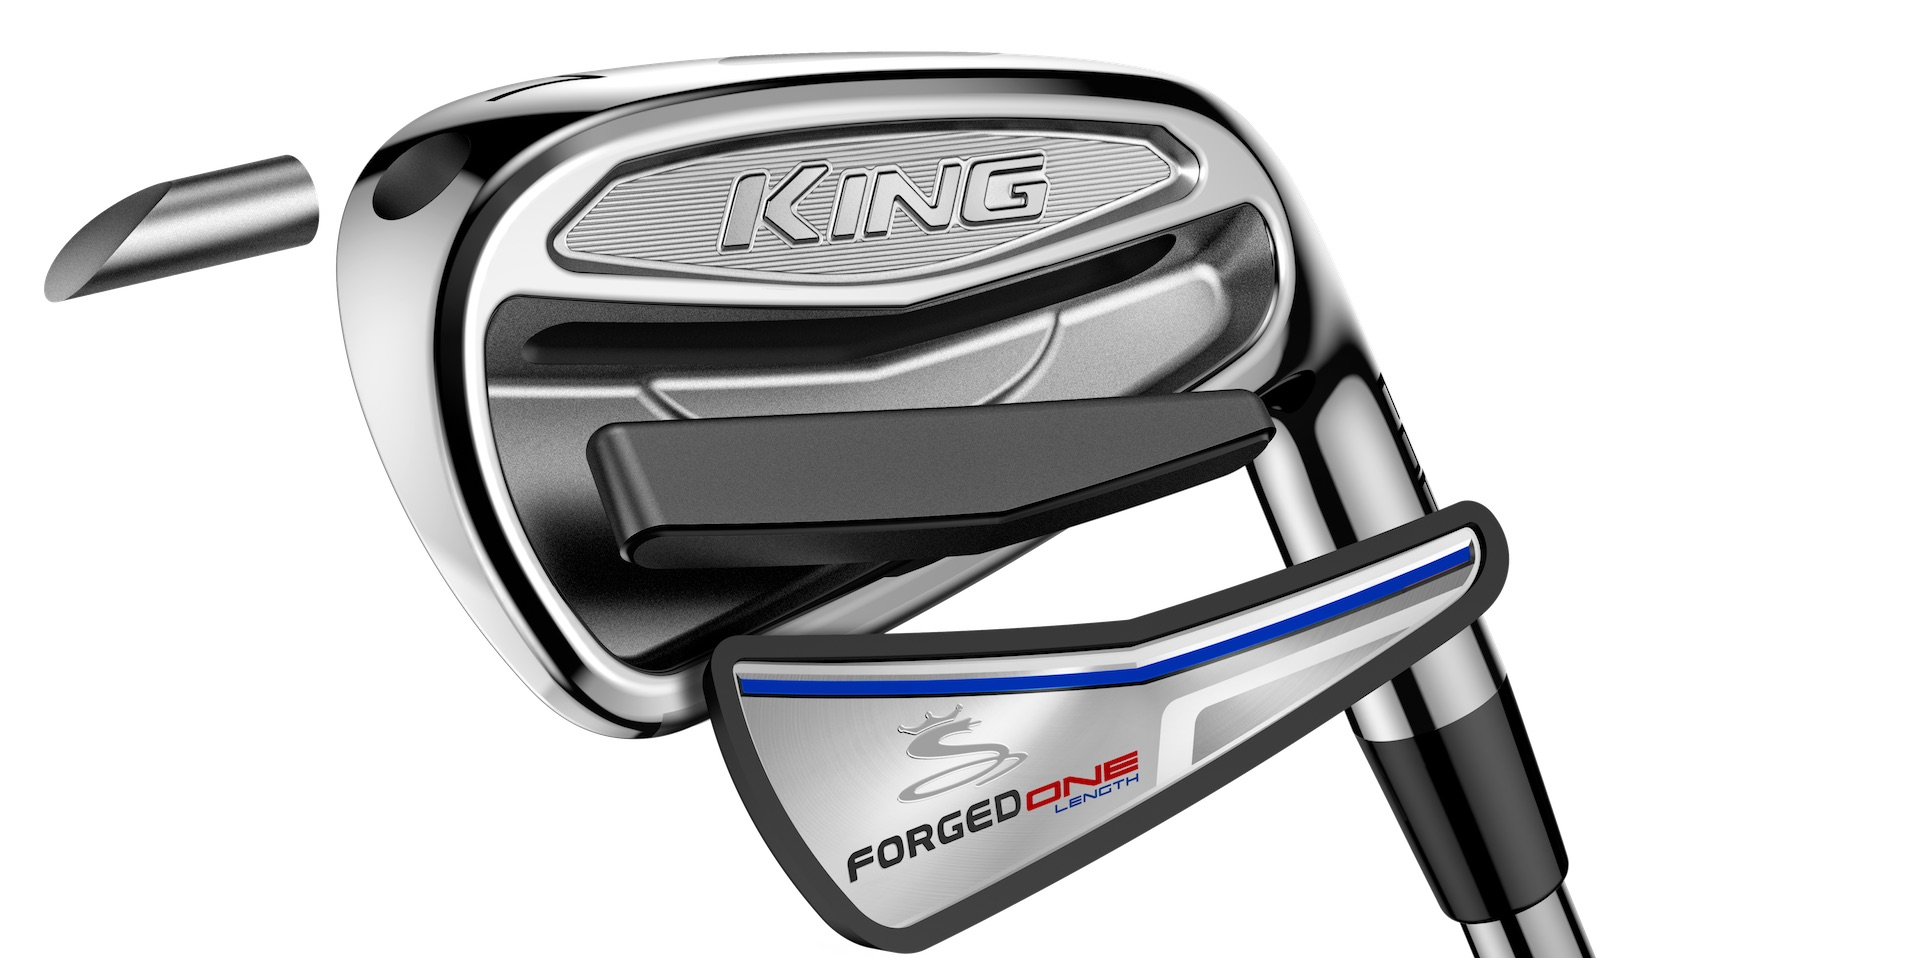 Cobra's New King Irons